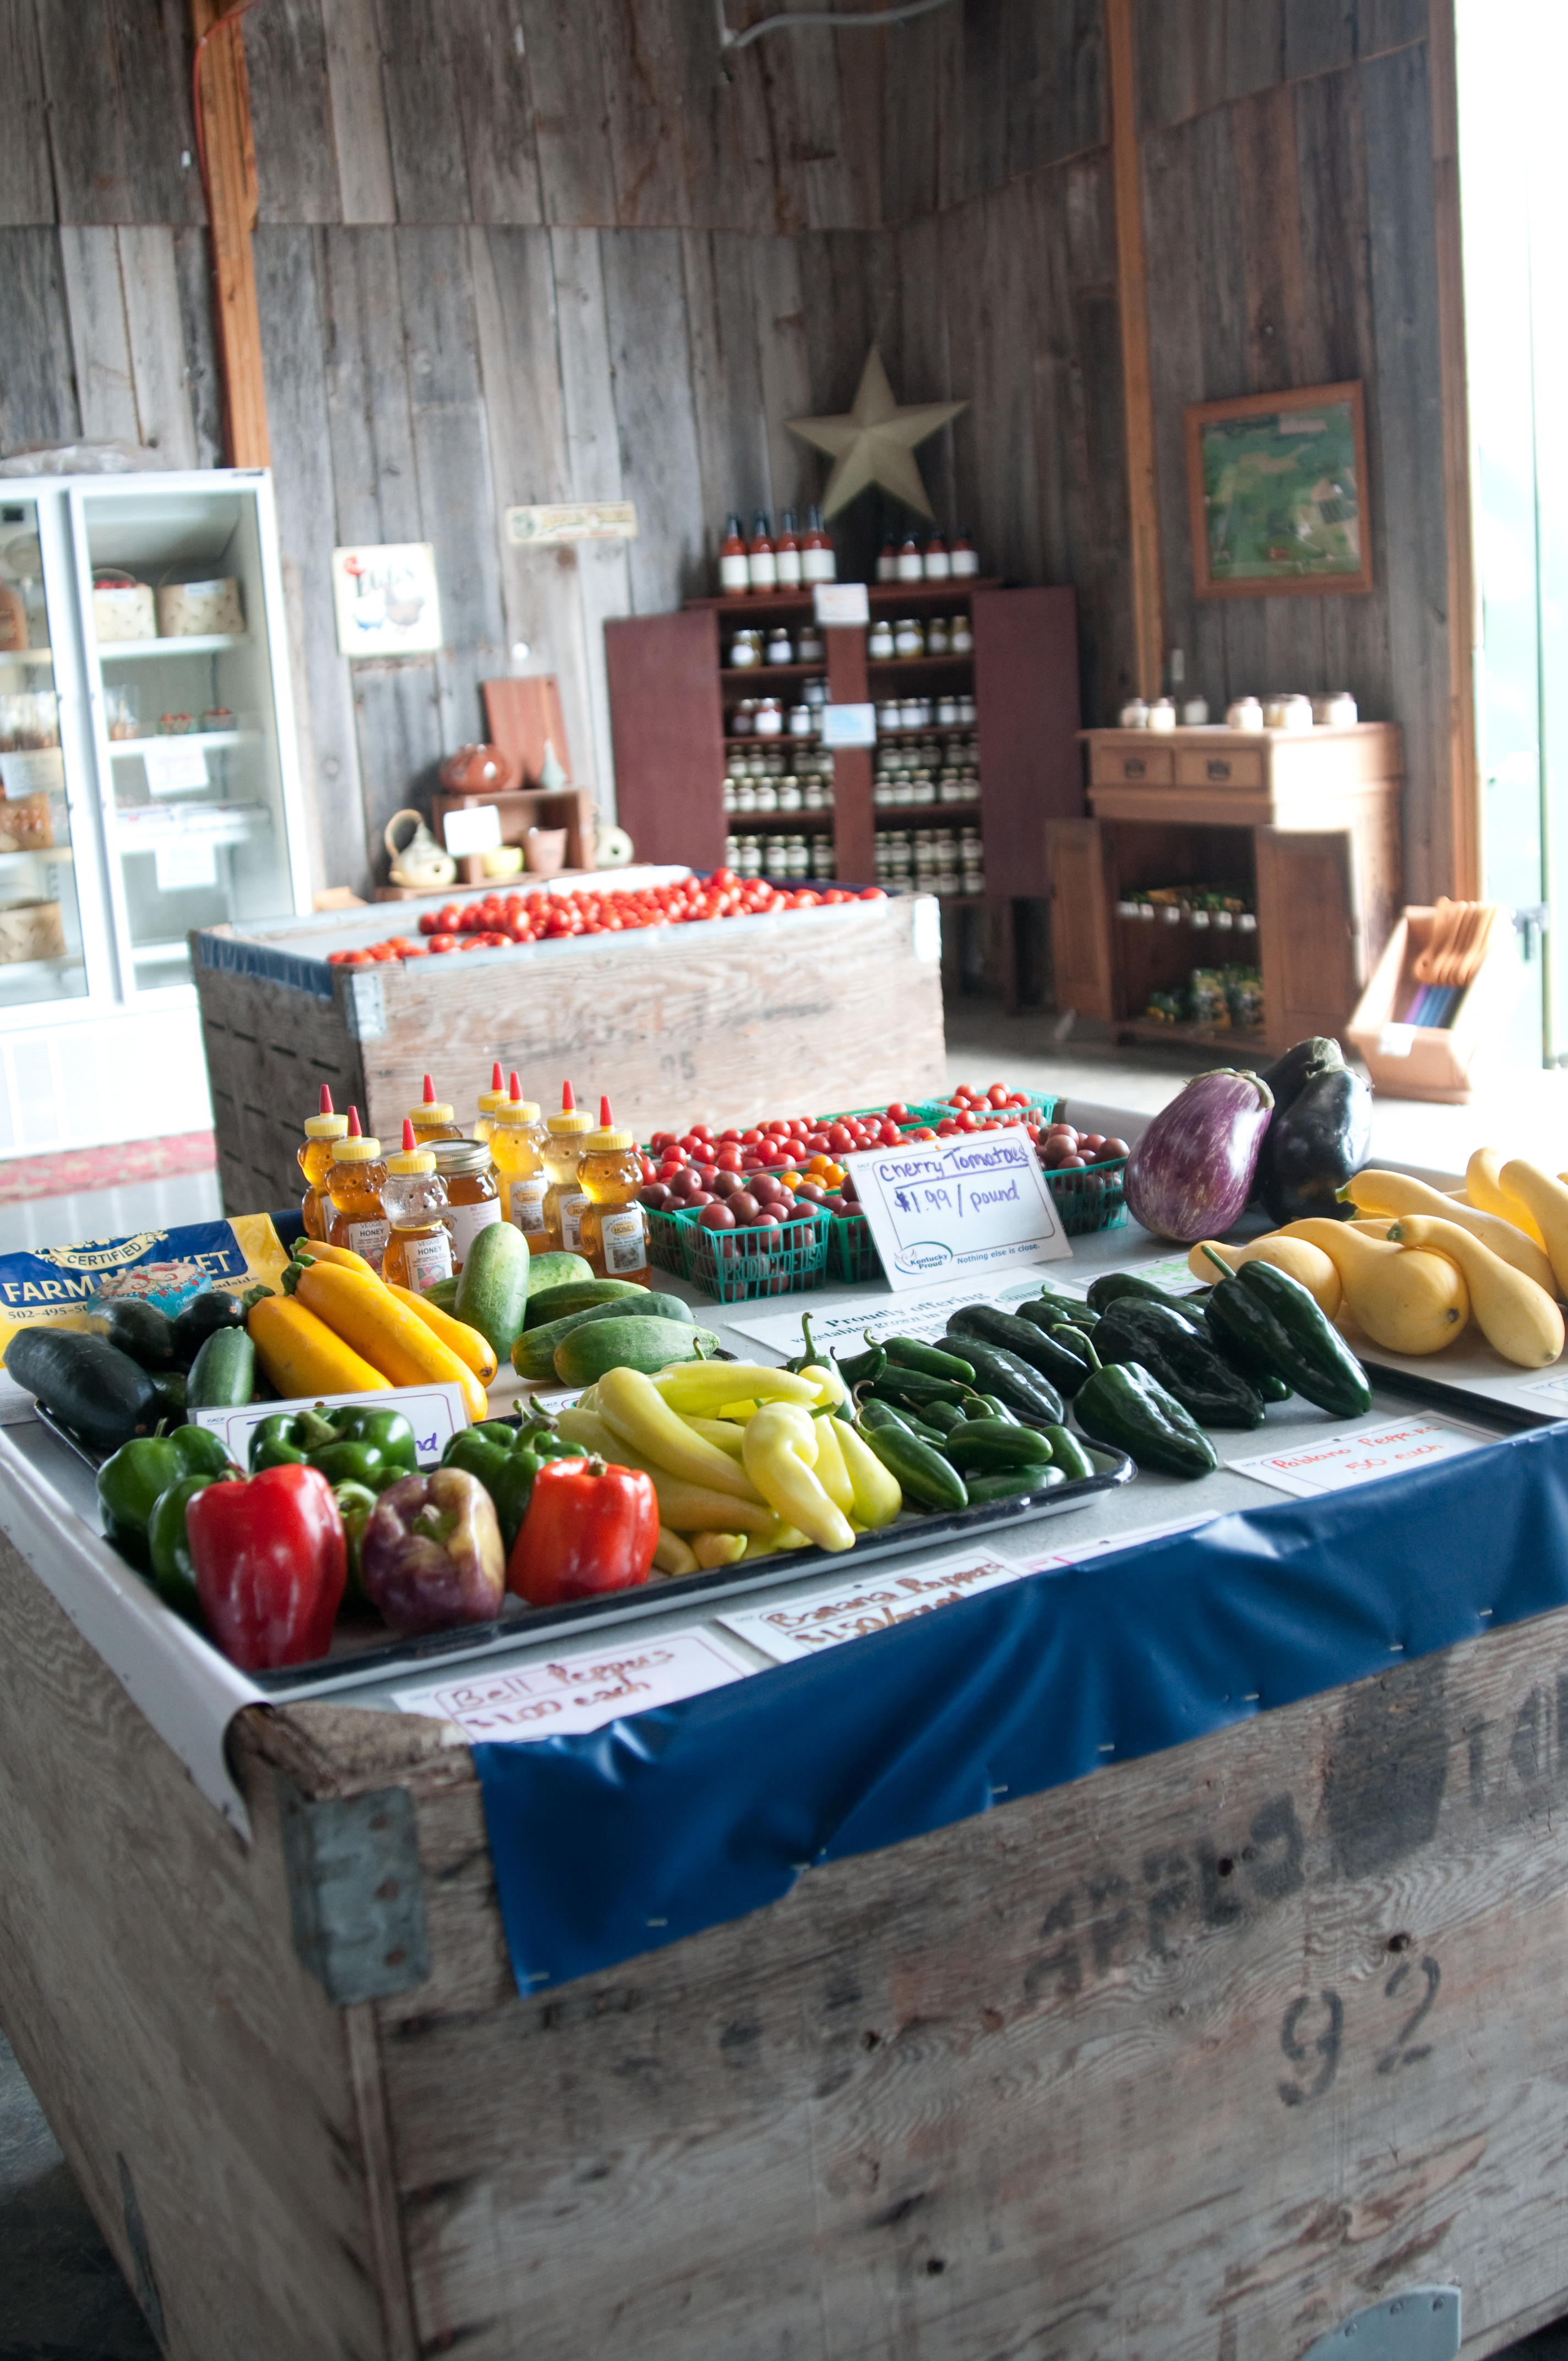 Tons of Local Produce